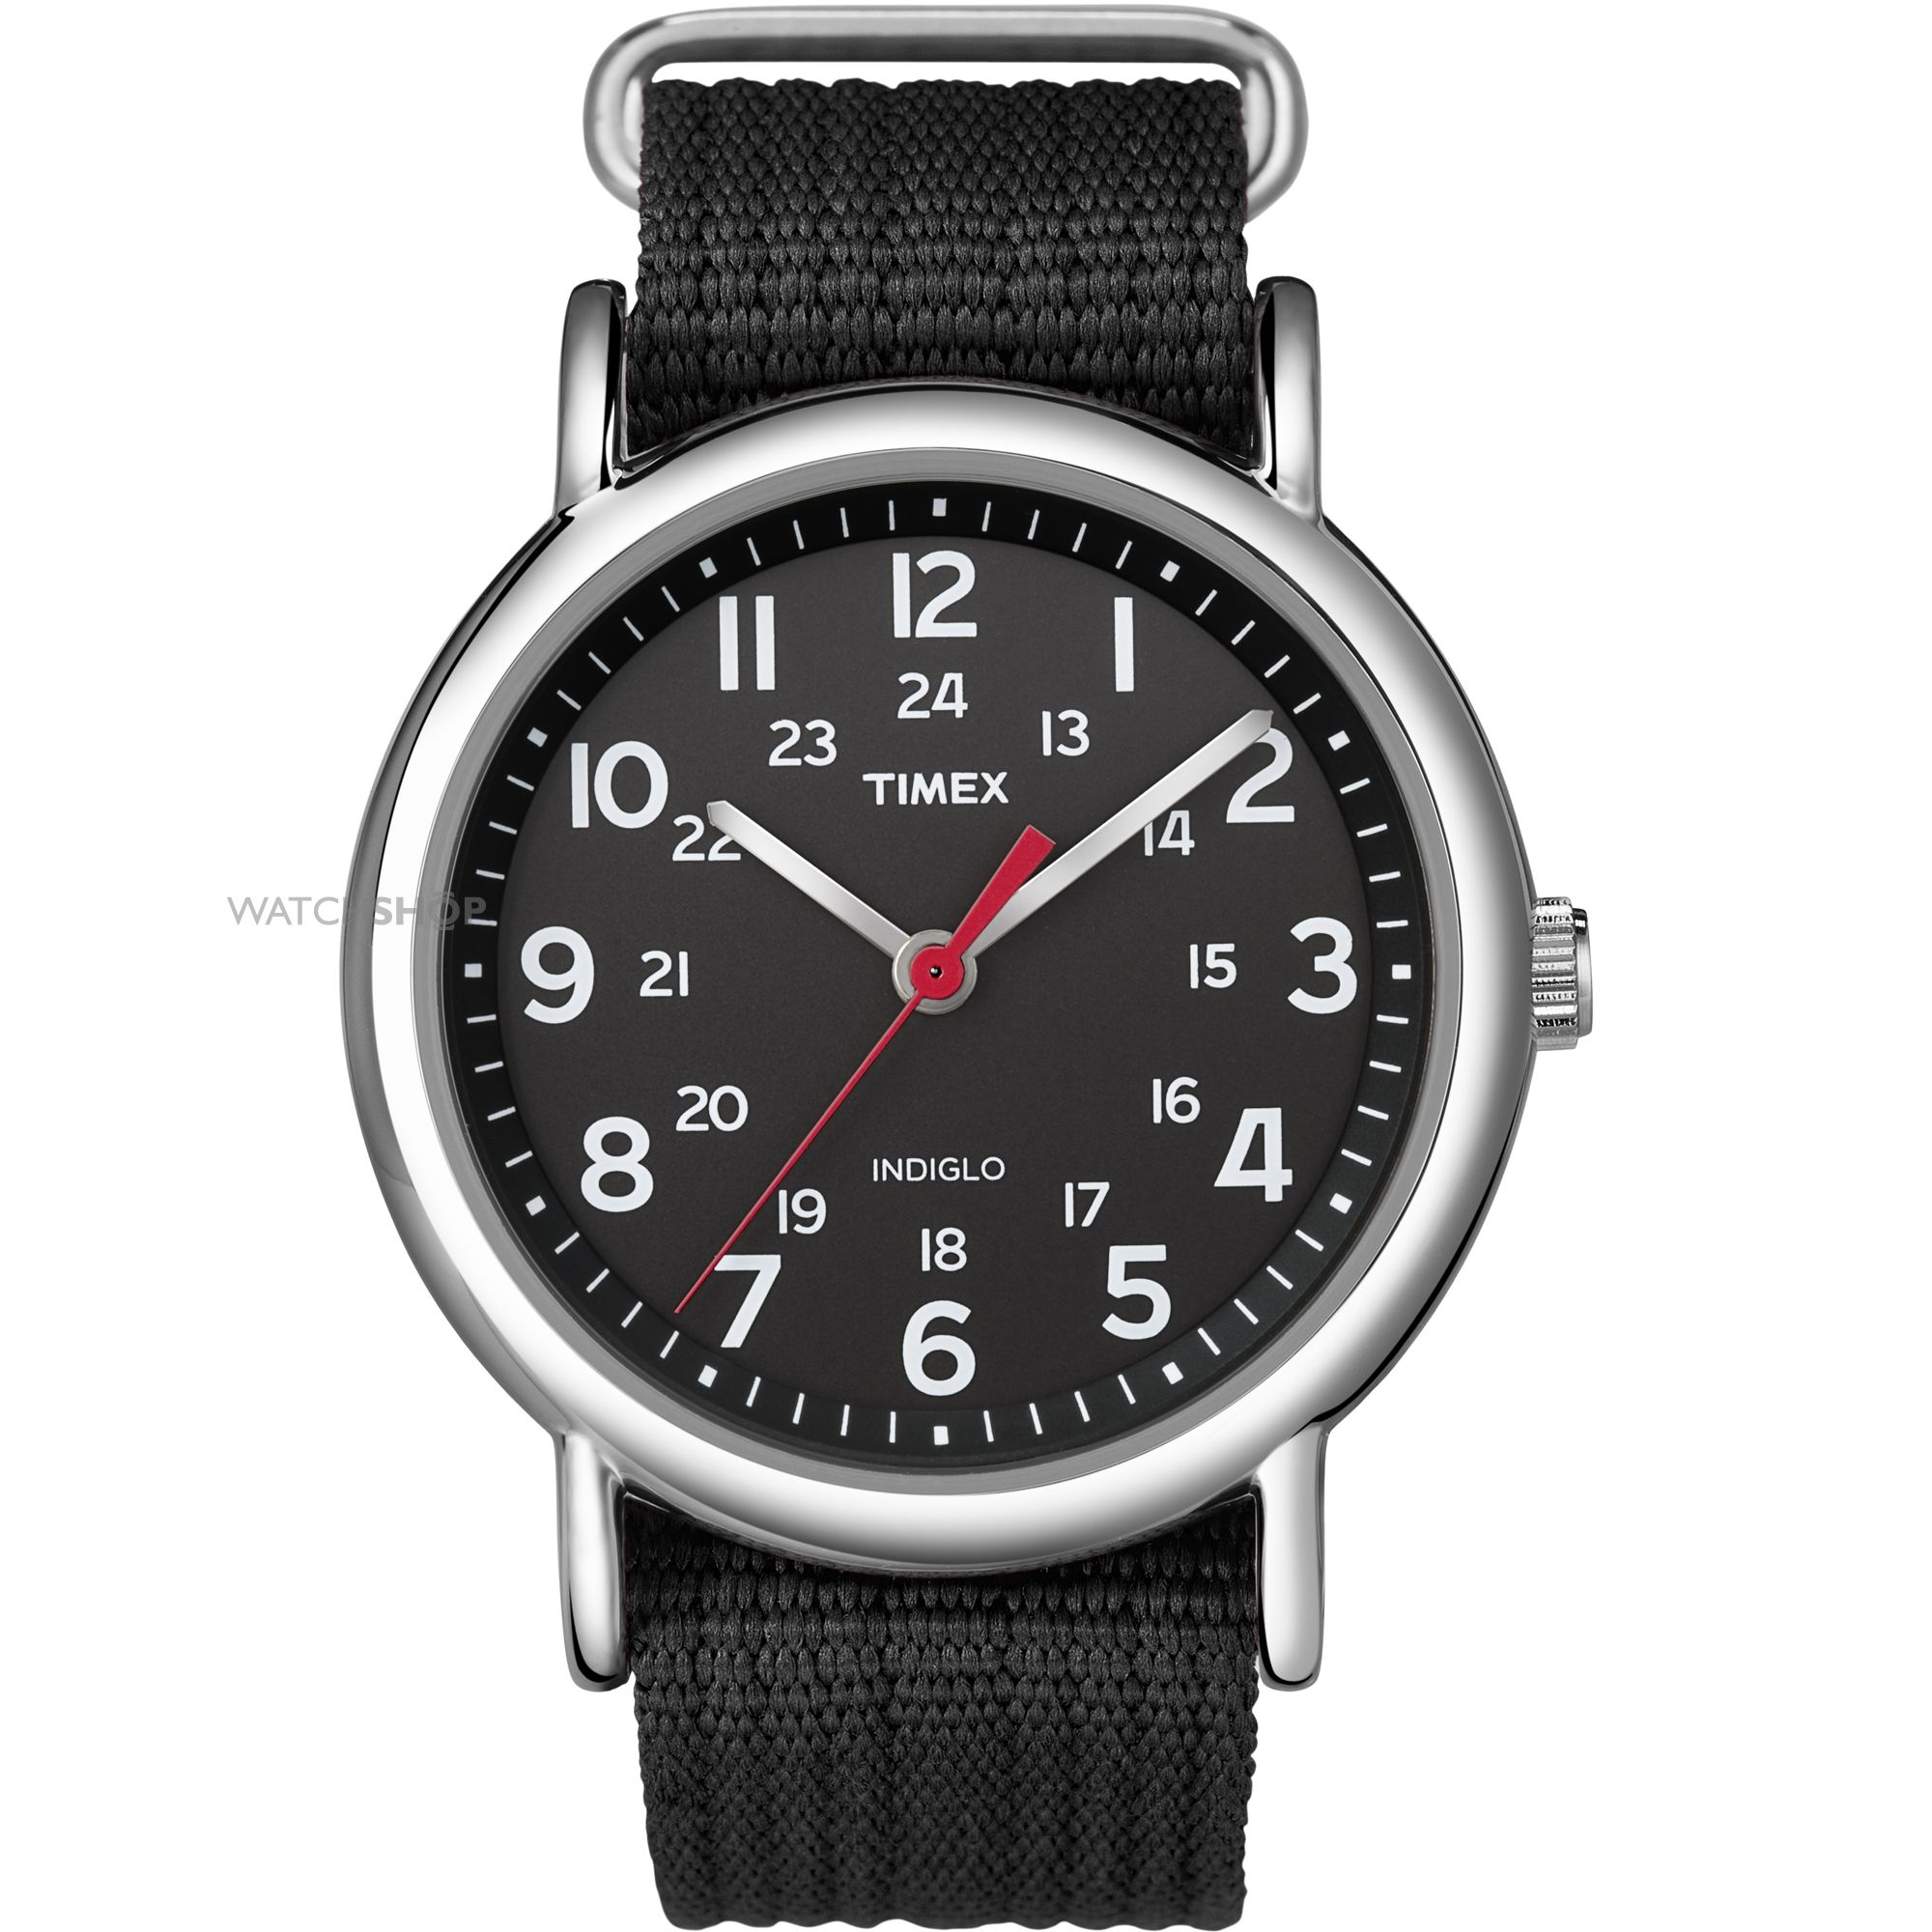 Unisex timex indiglo weekender watch t2n647 watch for Indiglo watches